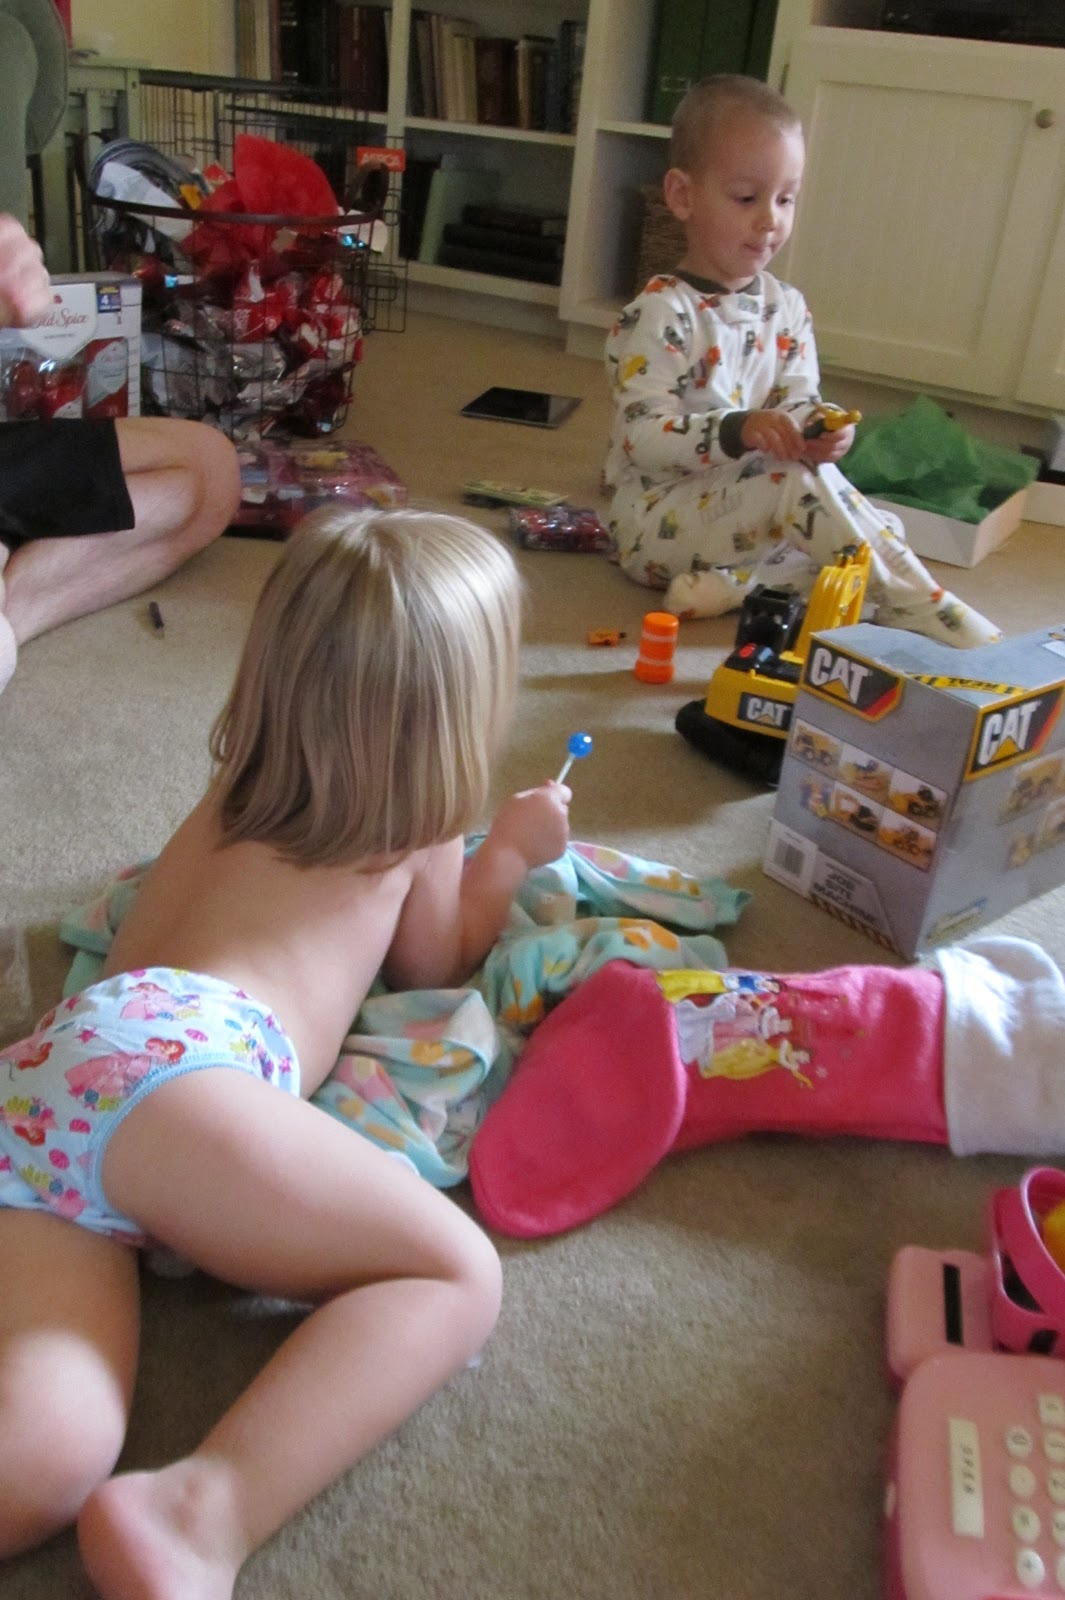 ... - this little girl always ends up in just her big-girl panties